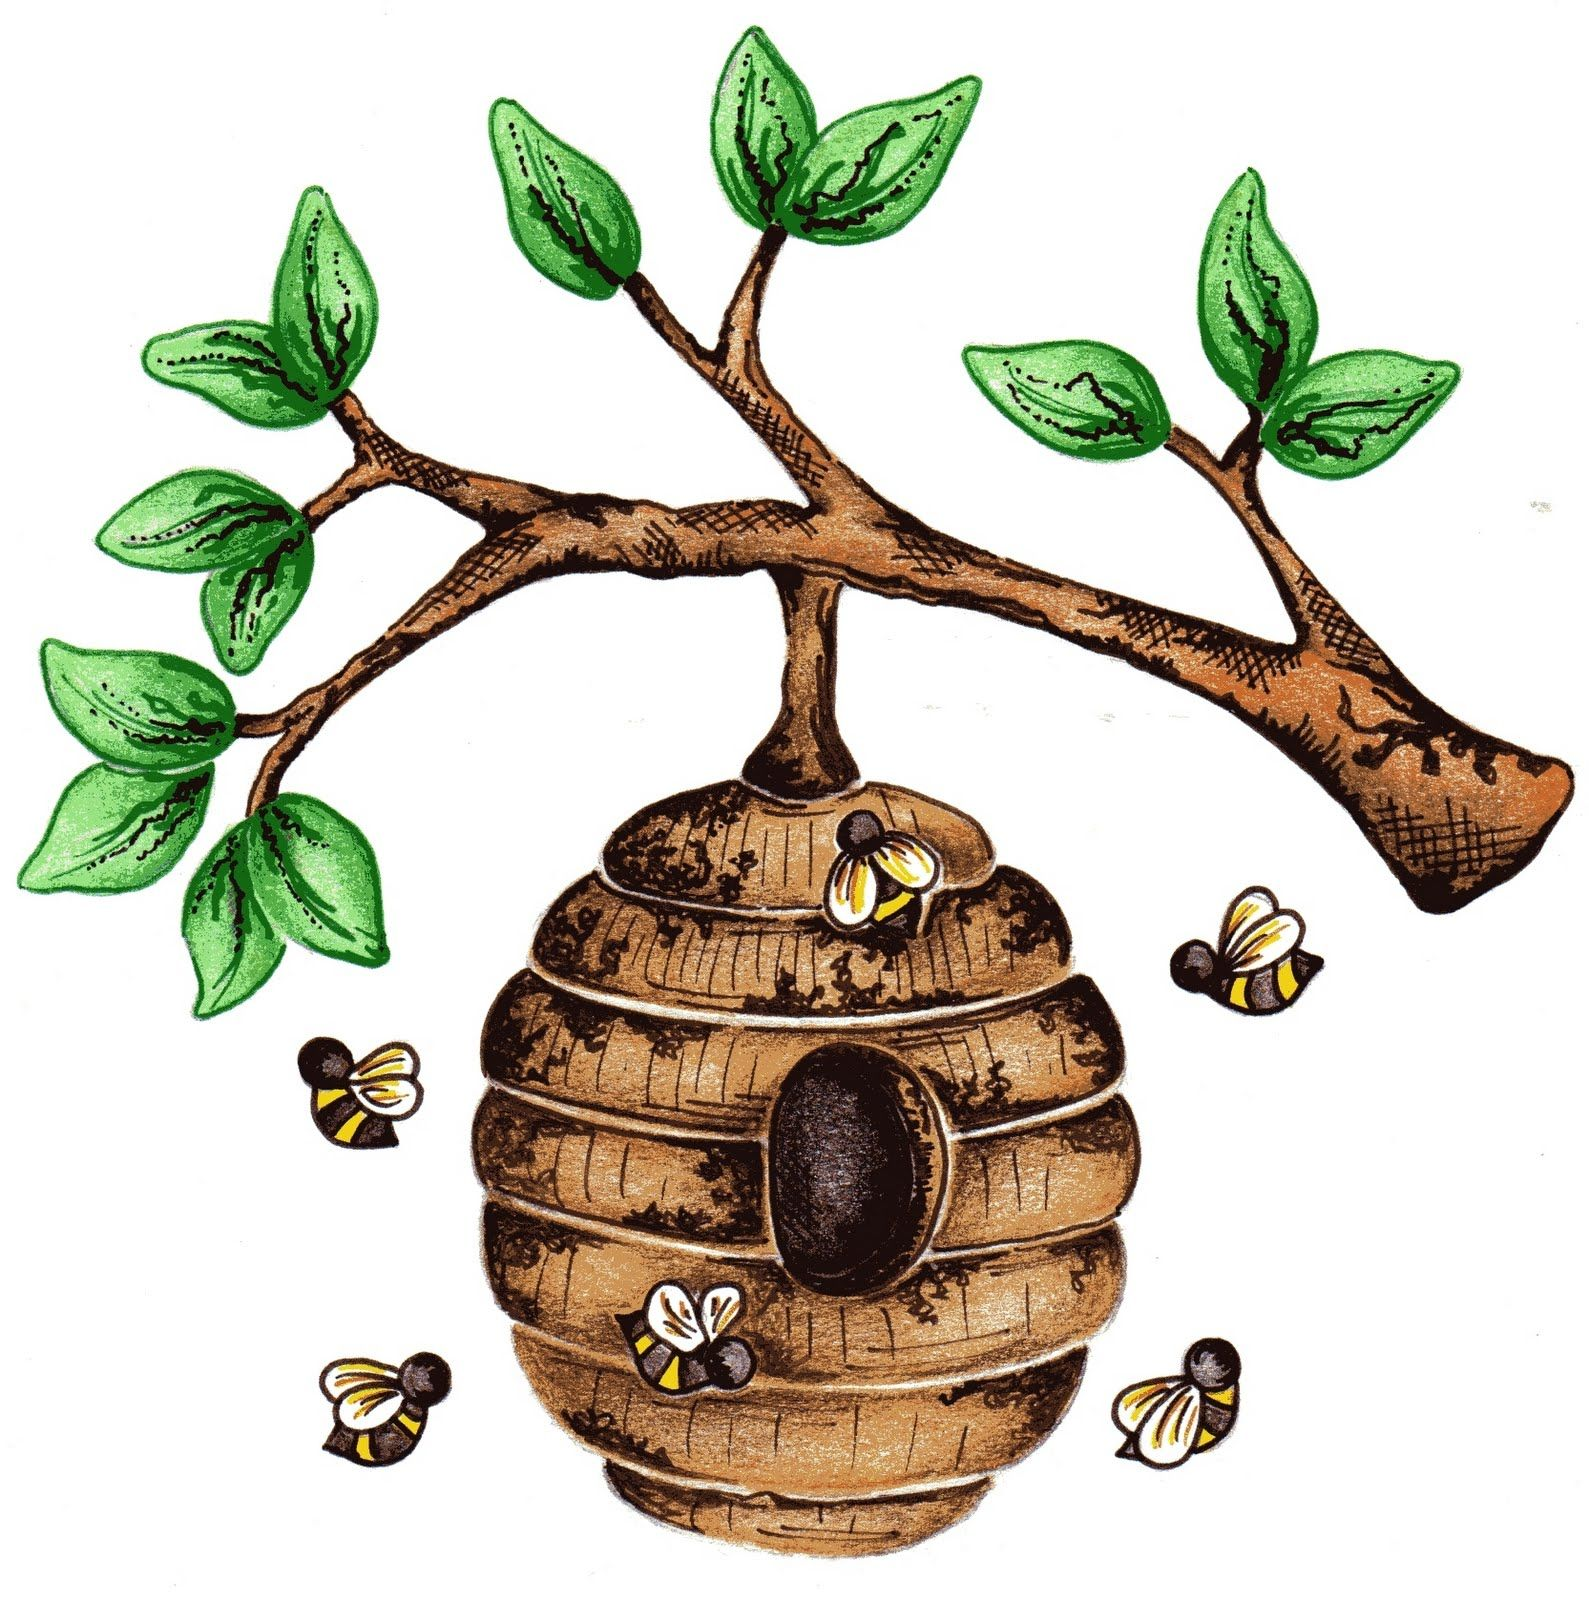 Beehive Images For Bee Hive In Tree Clip Art Beehive Art Bee Art Beehive Image